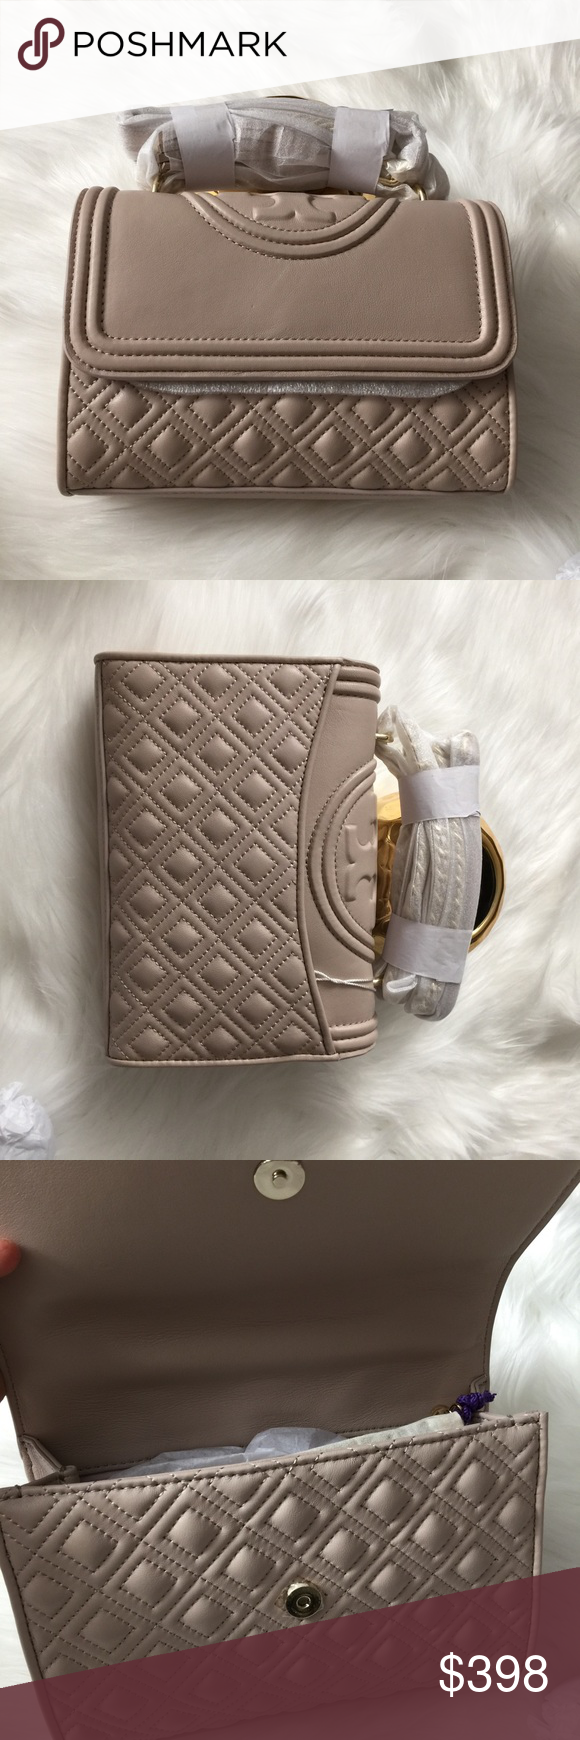 331fa8bc19b3 Tory Burch Fleming Small Convertible Shoulder Bag Brand new with bag and  dust bag. All